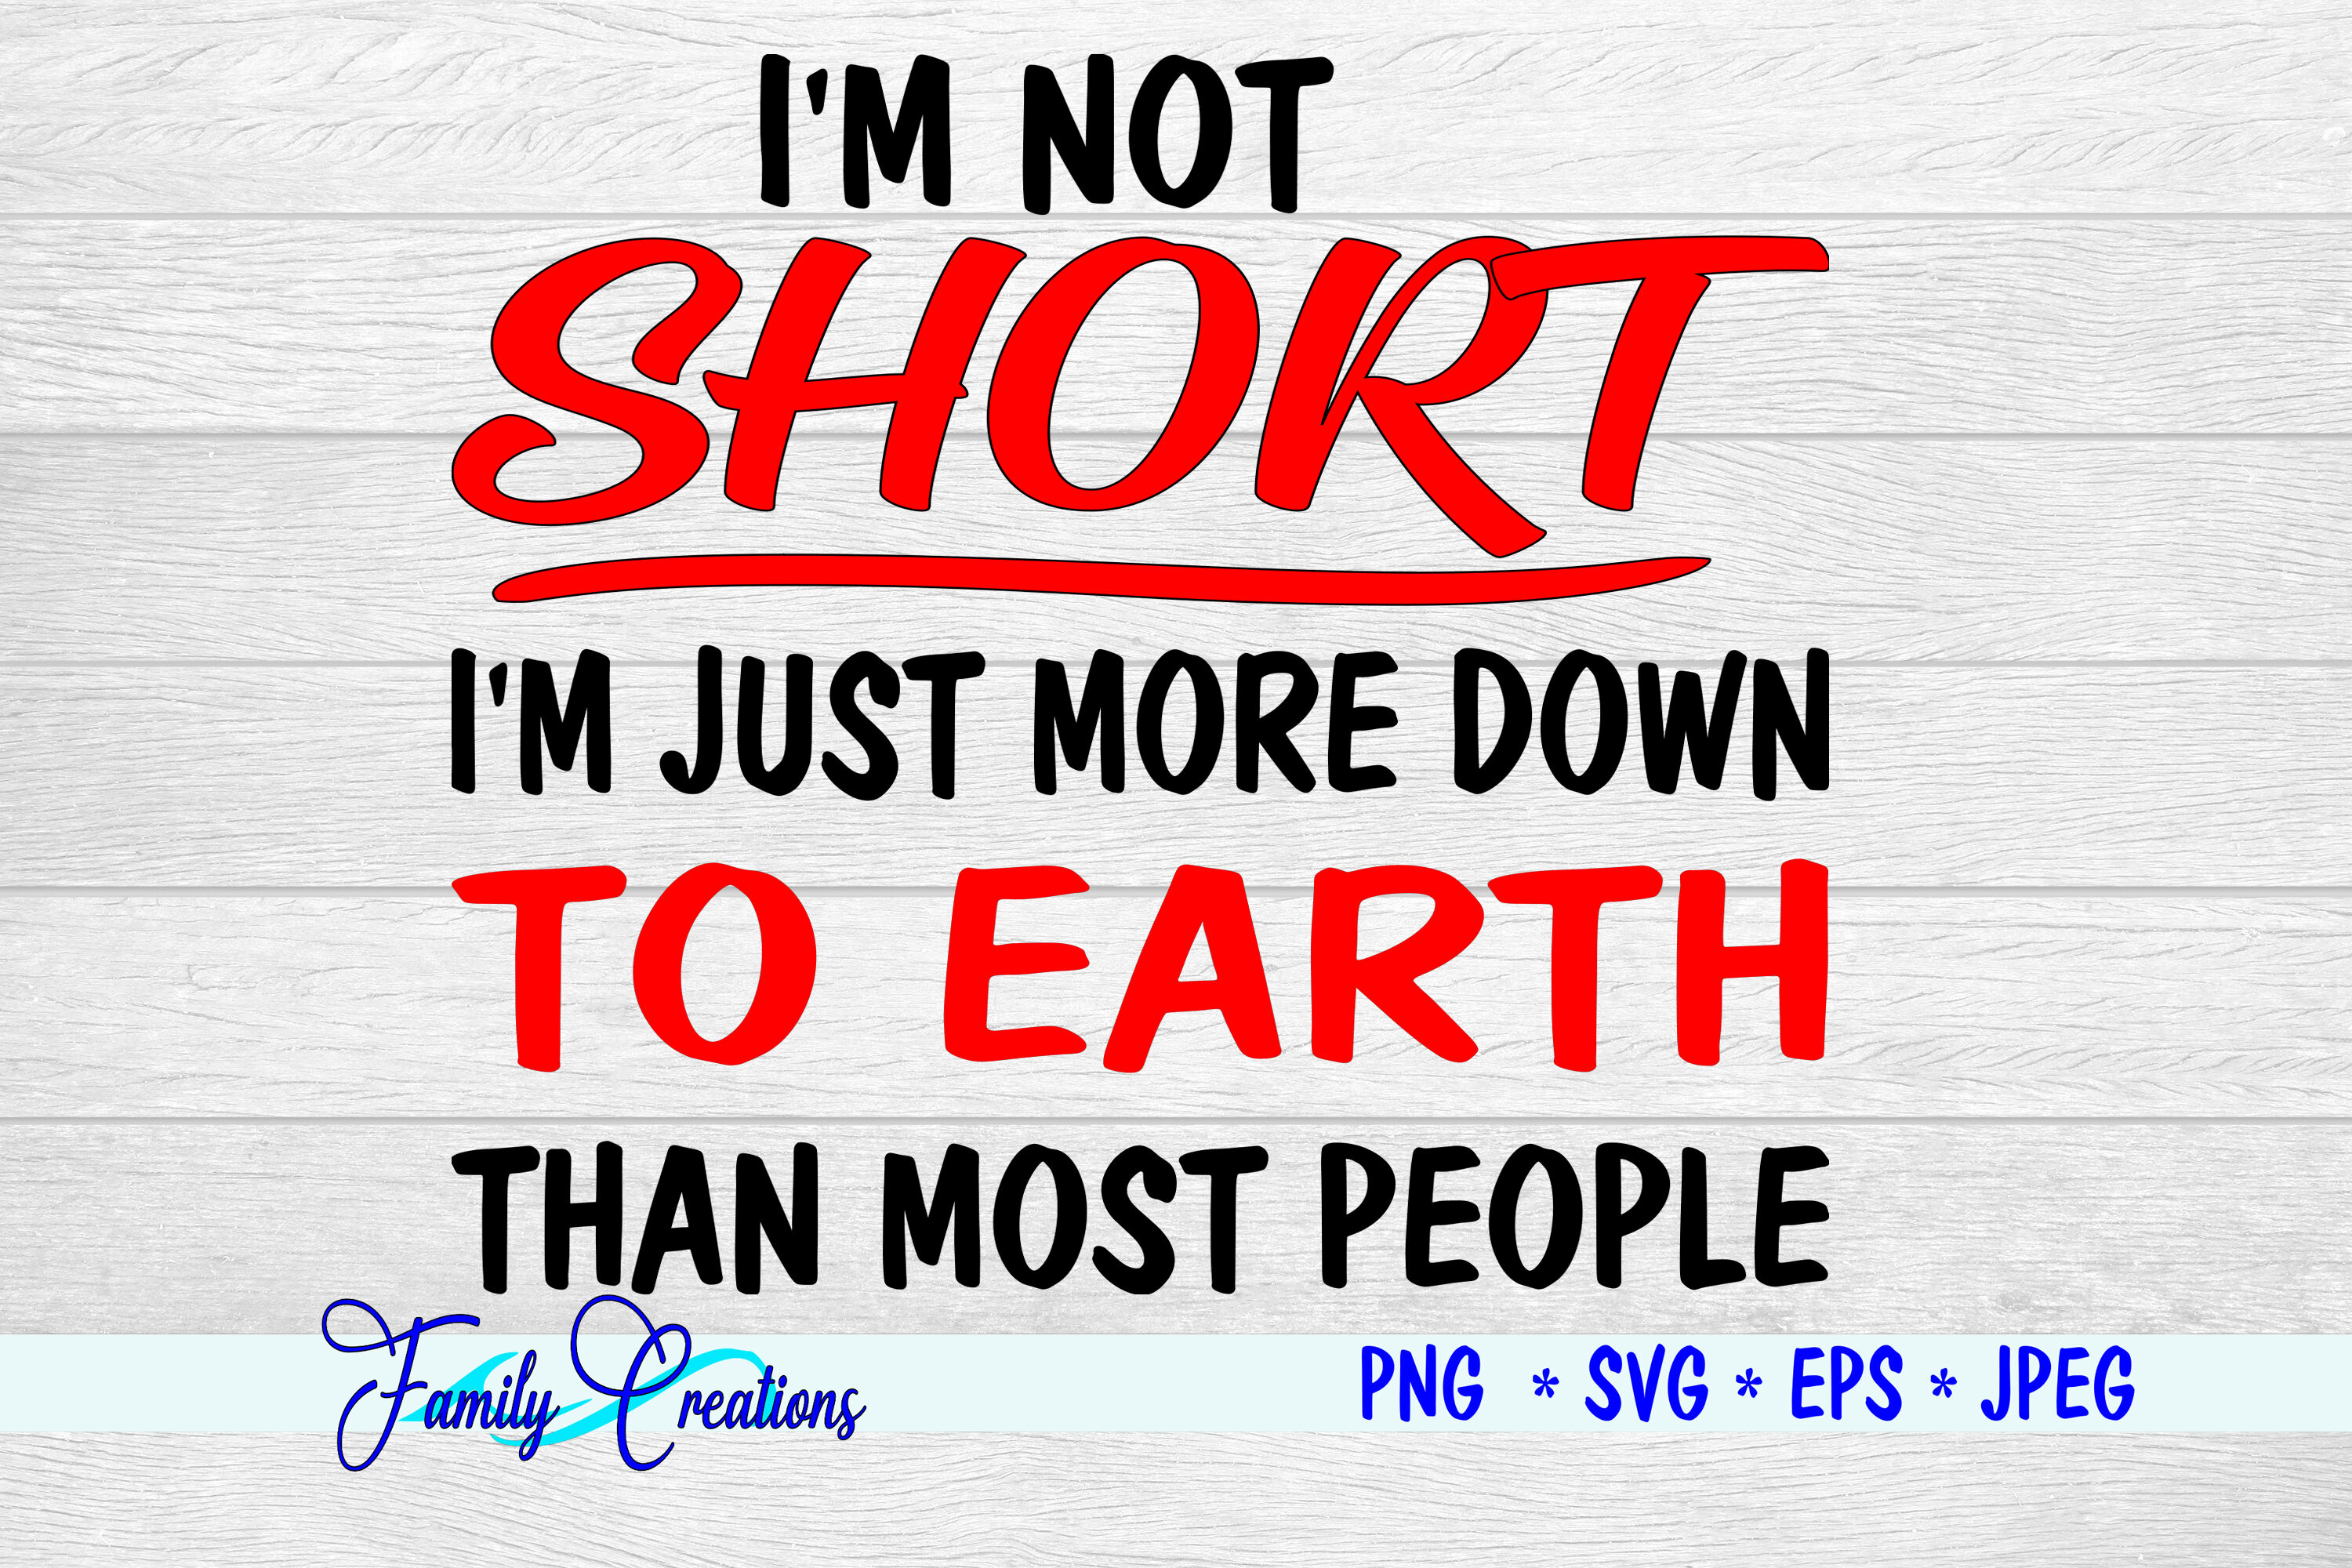 I M Not Short By Family Creations Thehungryjpeg Com